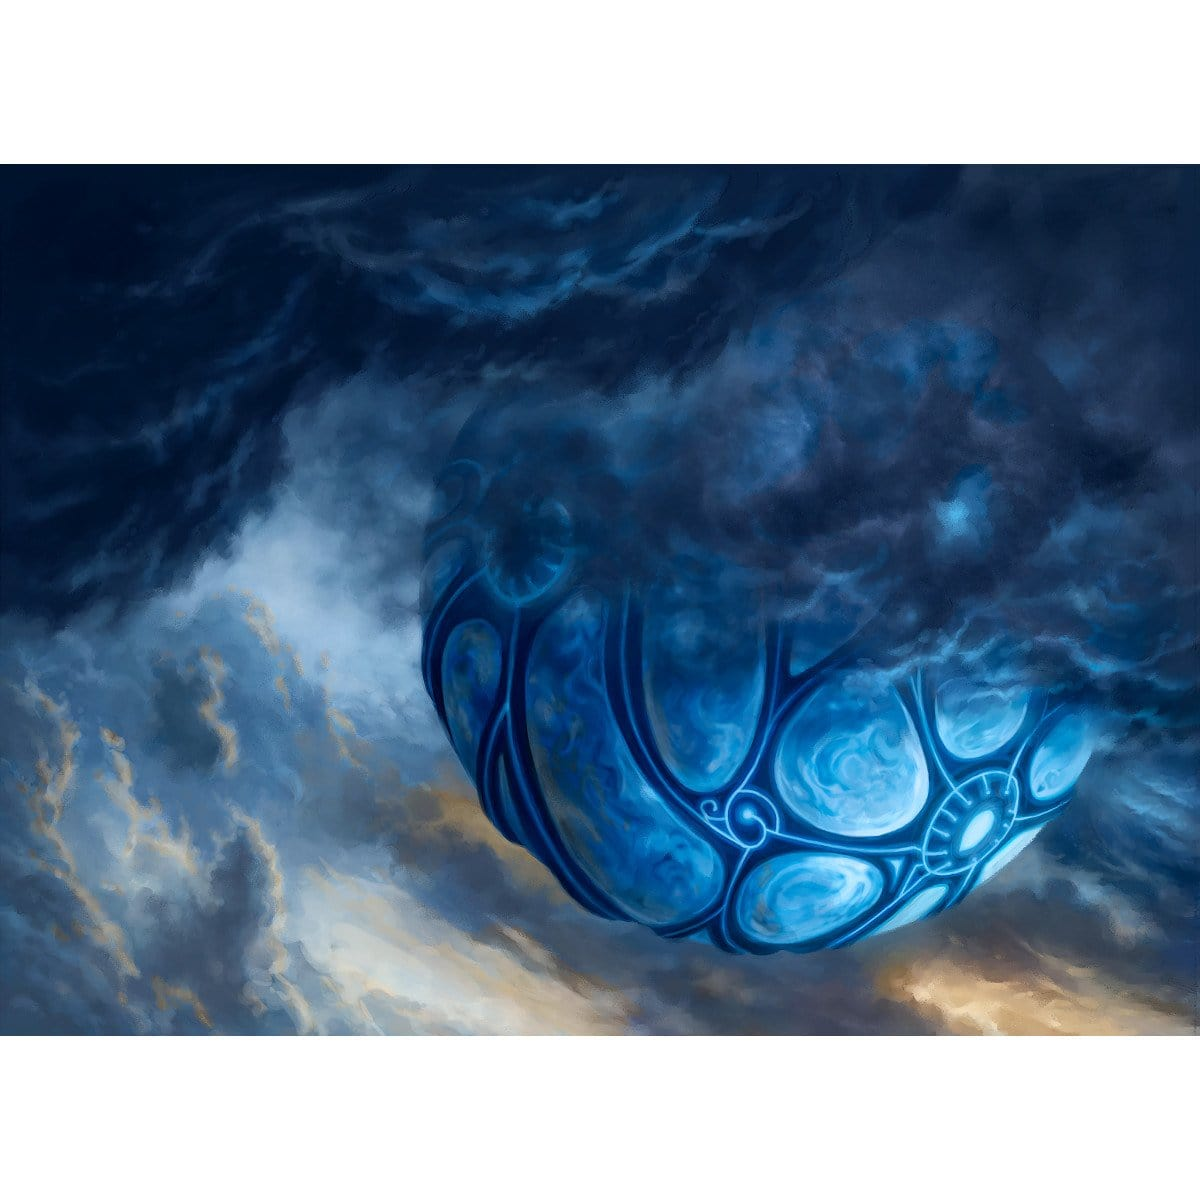 Cloudpost Print - Print - Original Magic Art - Accessories for Magic the Gathering and other card games